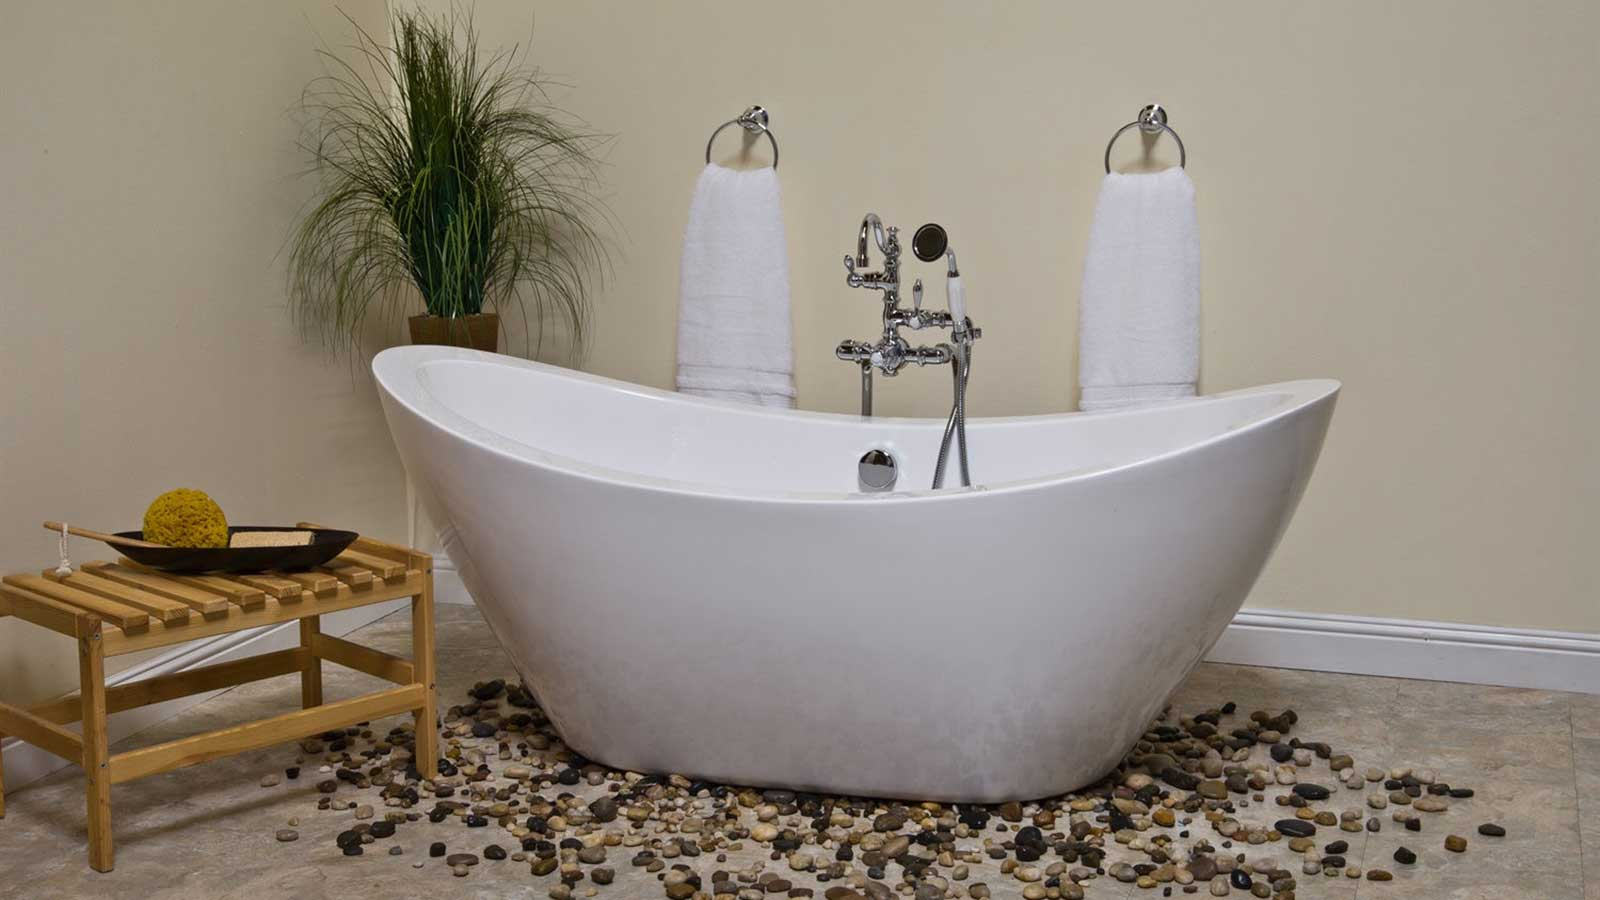 Bathtub materials they make a difference for Acrylic vs porcelain tub